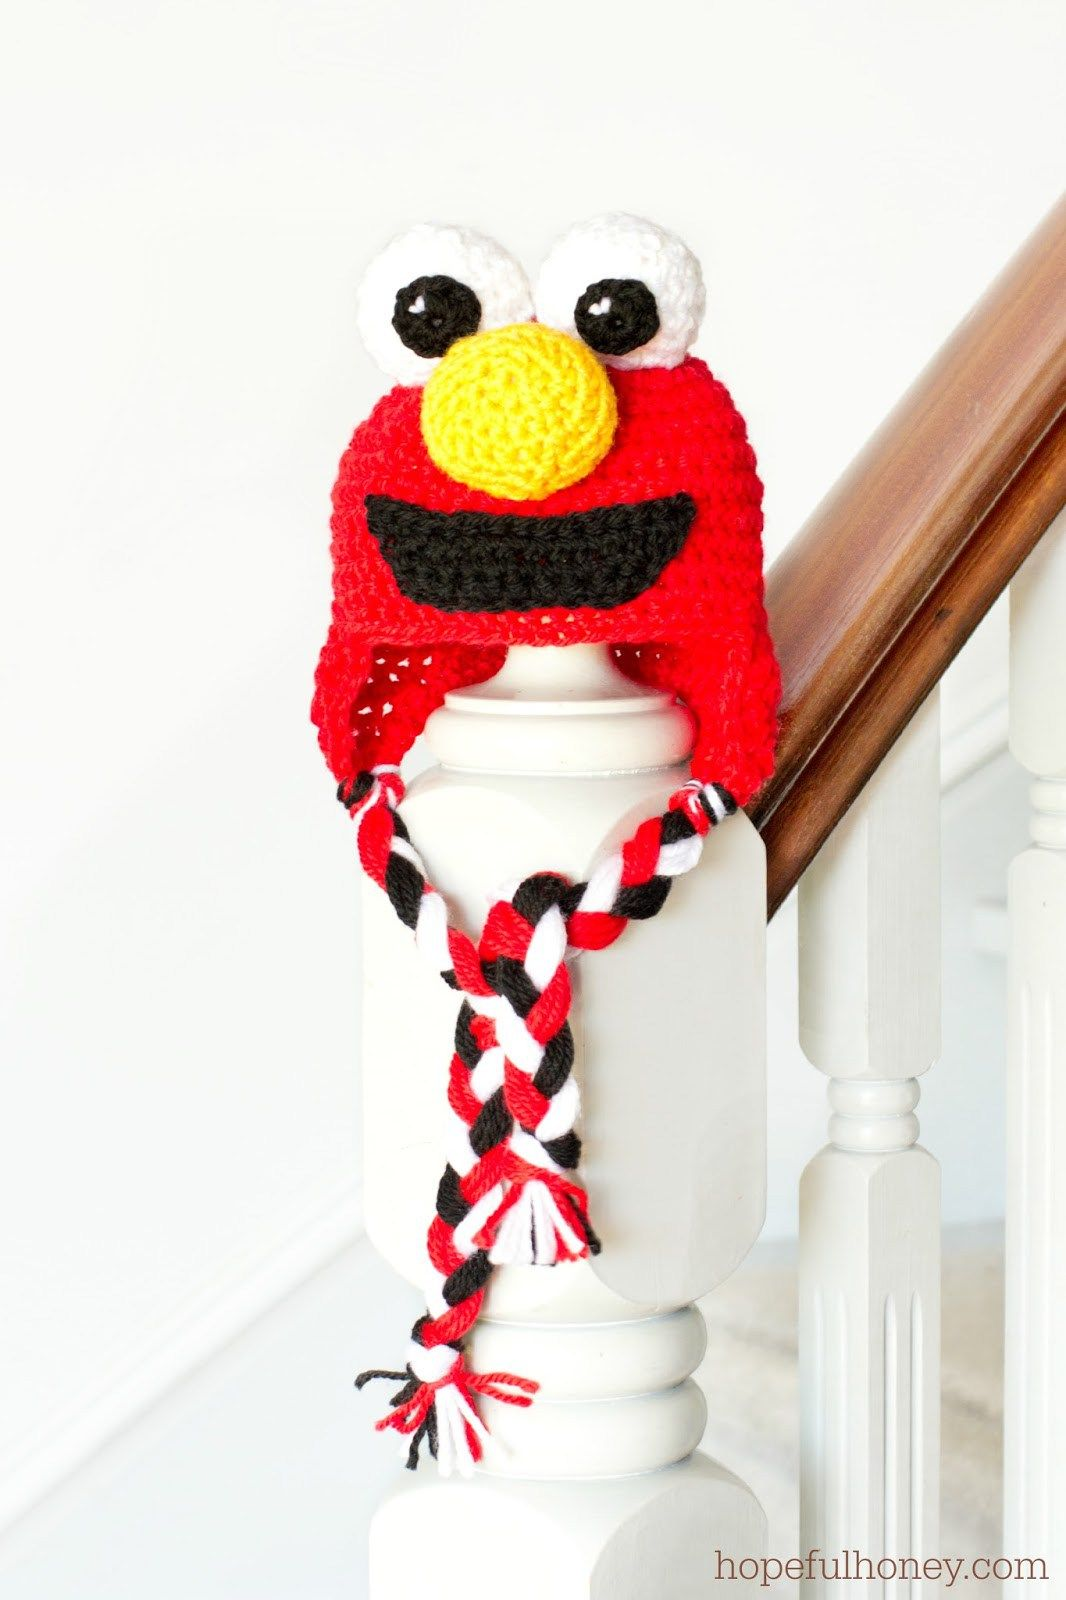 Sesame street elmo inspired crochet hat free pattern and cookie sesame street elmo inspired crochet hat free pattern and cookie monster bankloansurffo Gallery